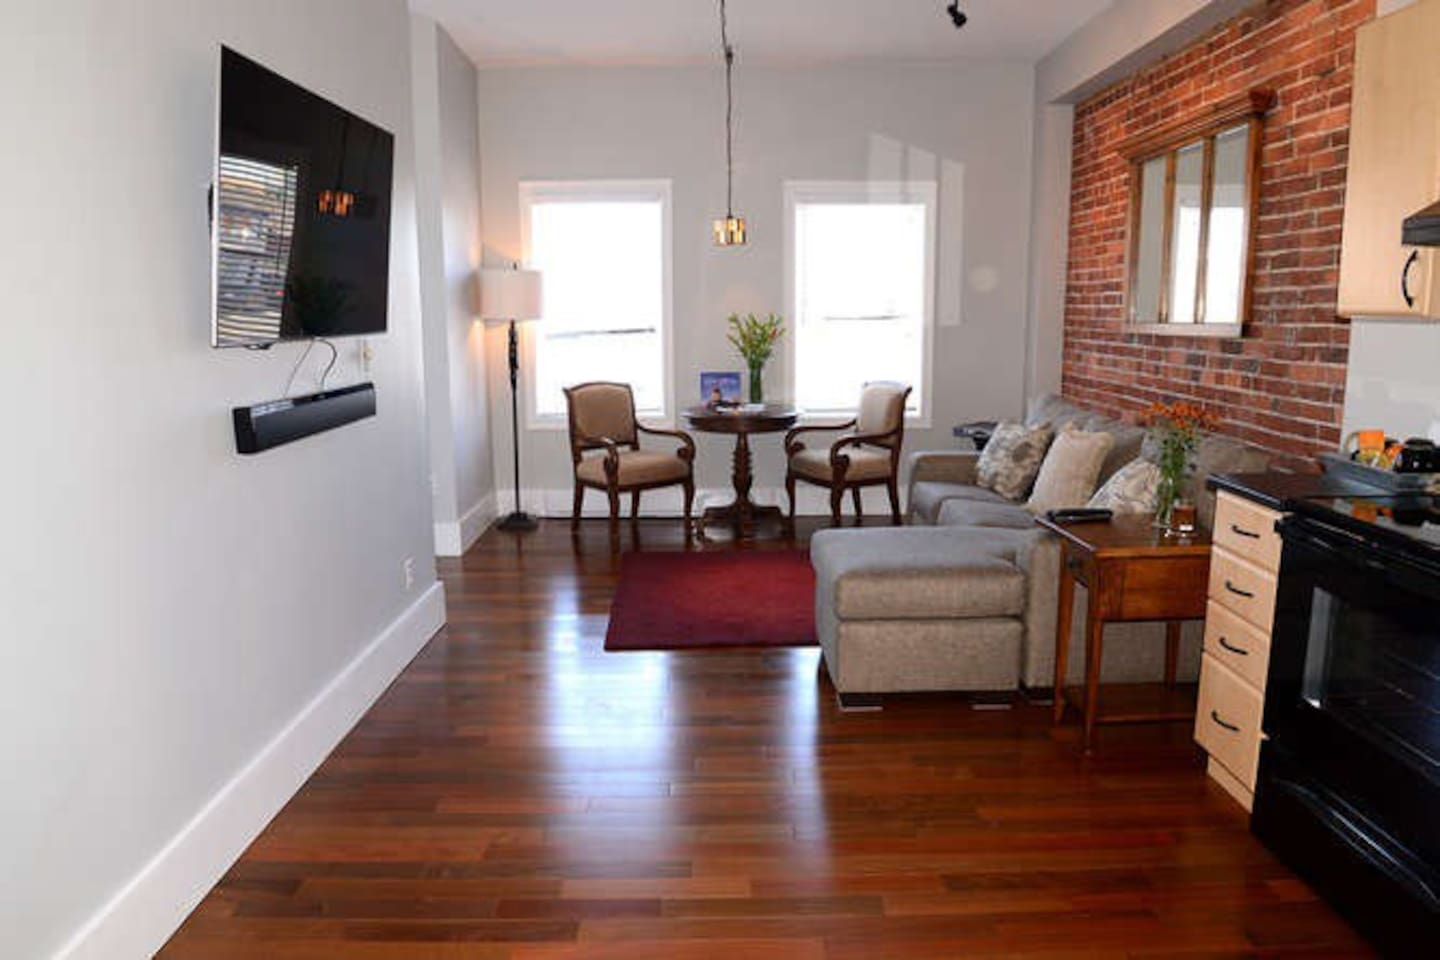 Great room with amazing natural light, brand new exotic hardwood floors and comfortable seating options.